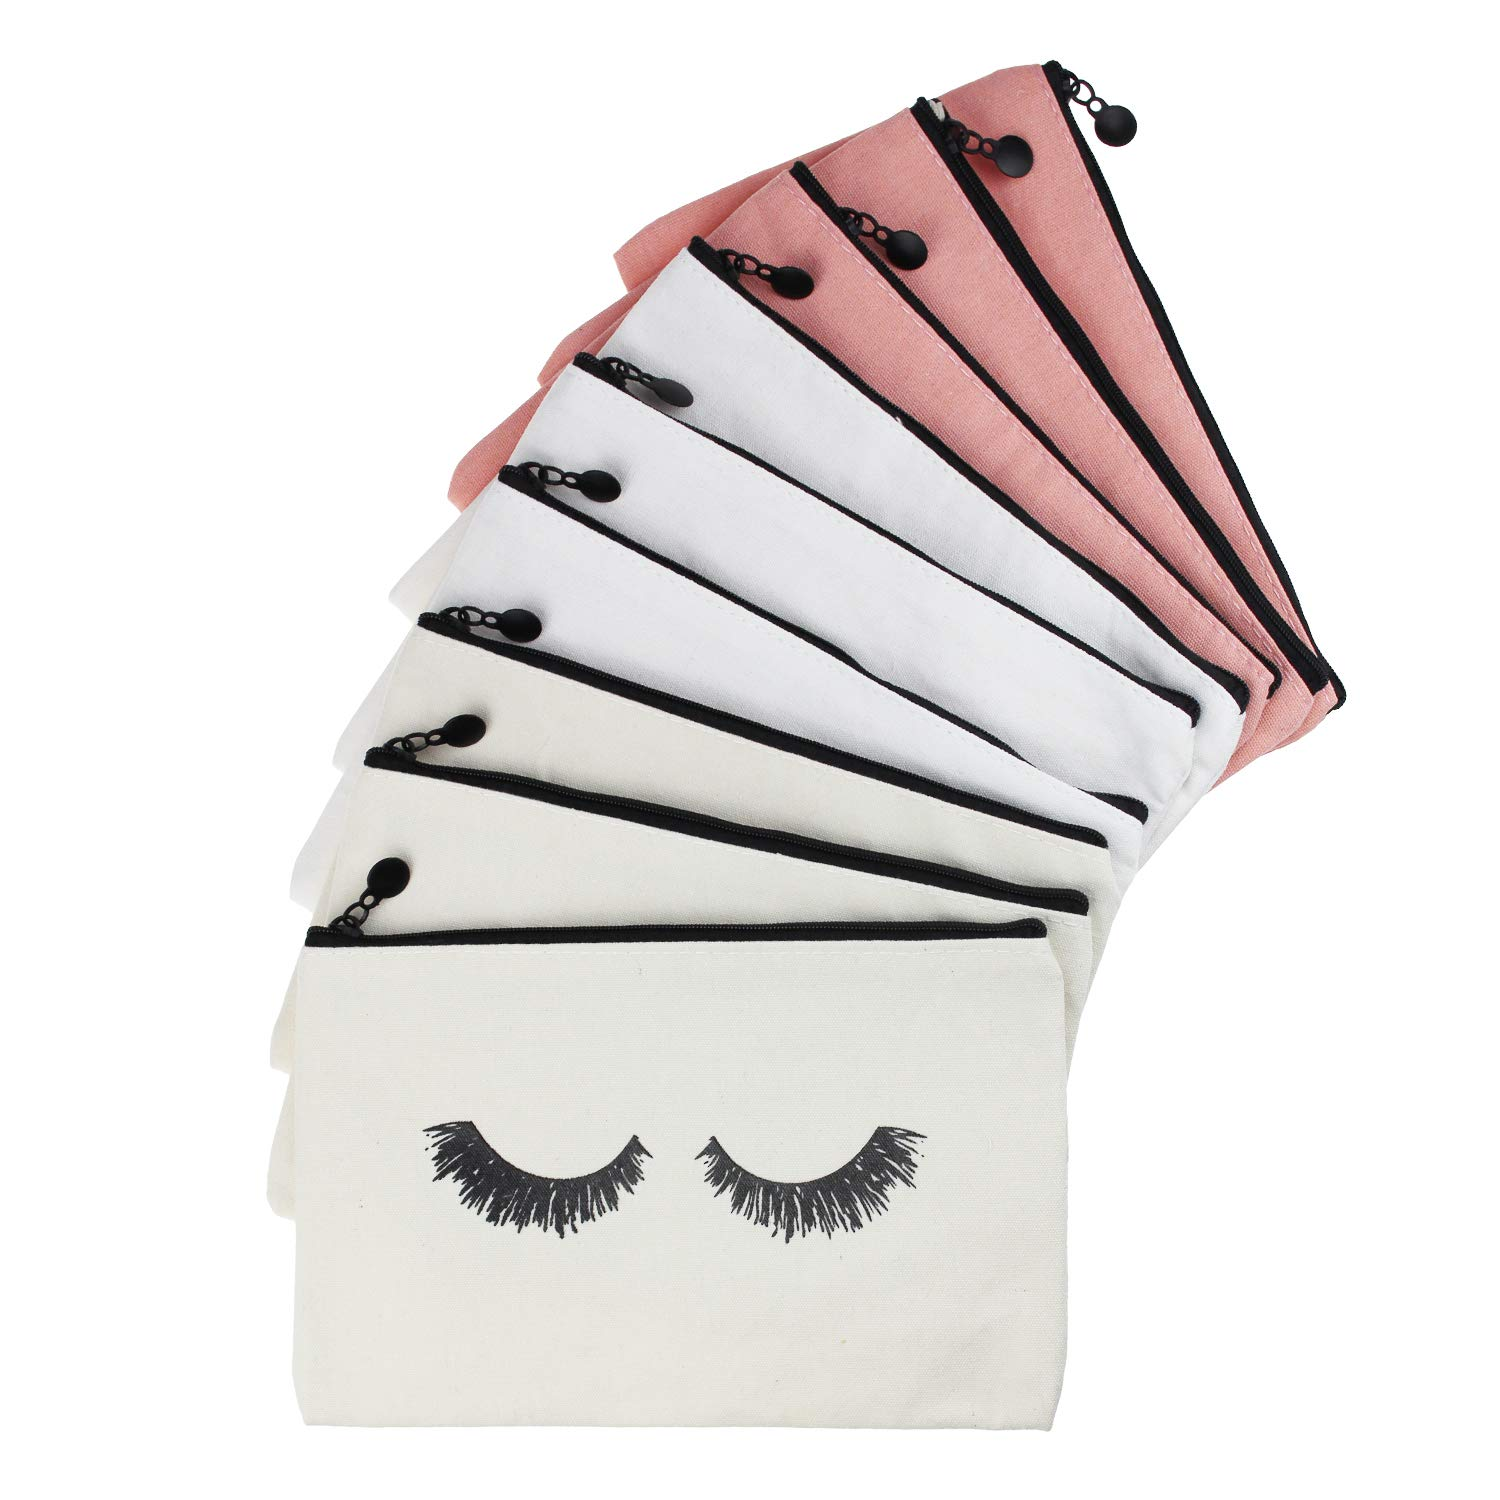 LJY 9 Pieces Eyelash Pattern Makeup Cosmetic Travel Pouches Toiletry Bag Cases with Zipper for Women and Girls, 3 Colors